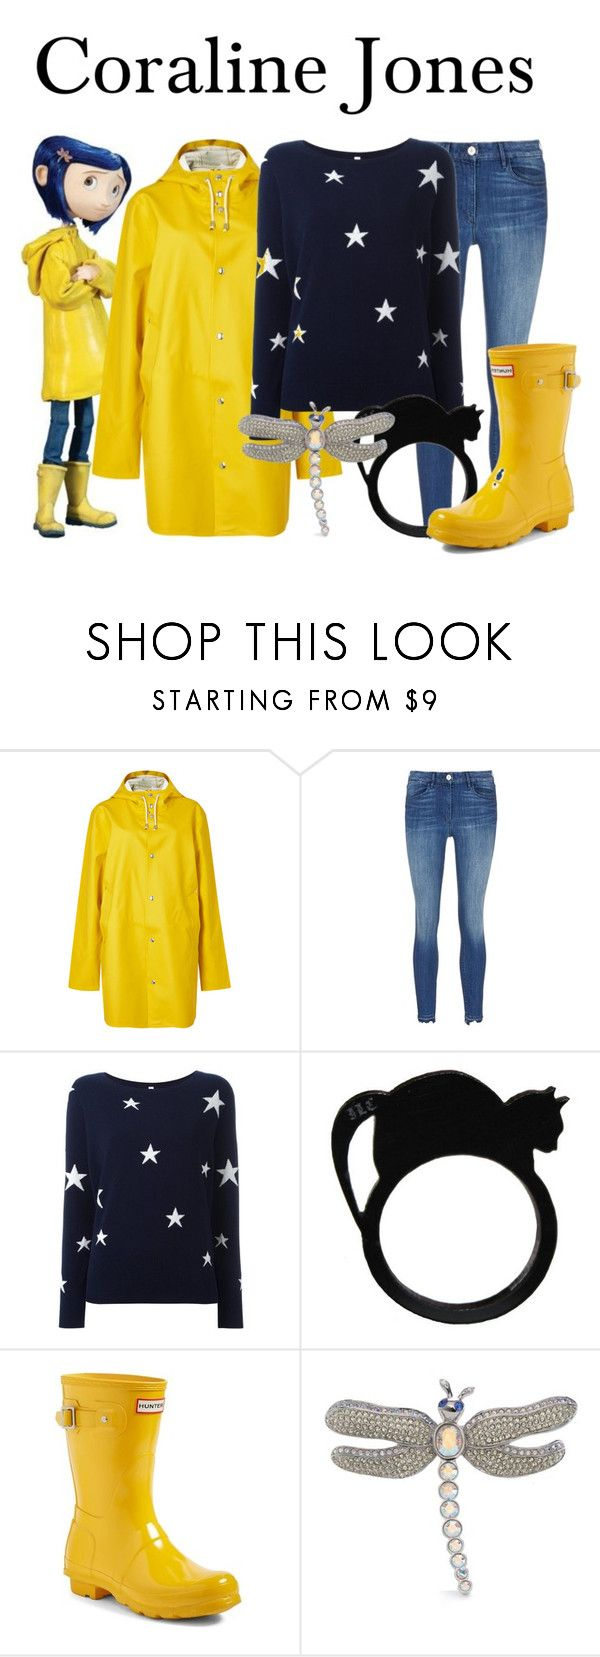 """Coraline Jones"" by megan-vanwinkle ❤ liked on Polyvore featuring Stutterheim, PHILO-SOFIE, Hunter and Carolee"